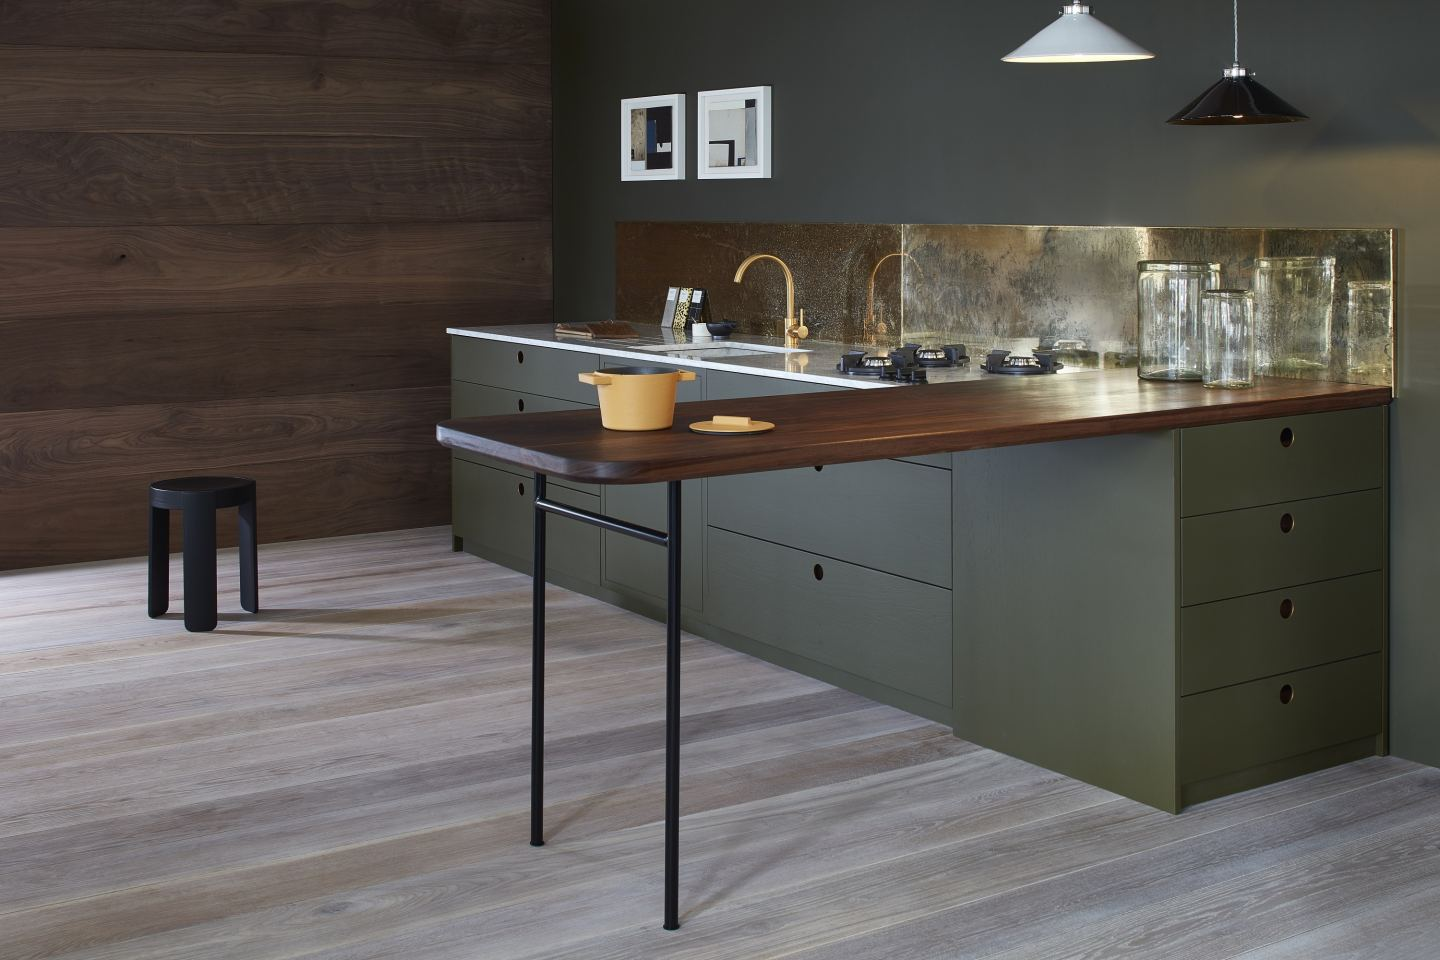 Naked-Kitchens-The-Ladbroke-kitchen-in-dark-green-with-gold-accents-sml.jpg